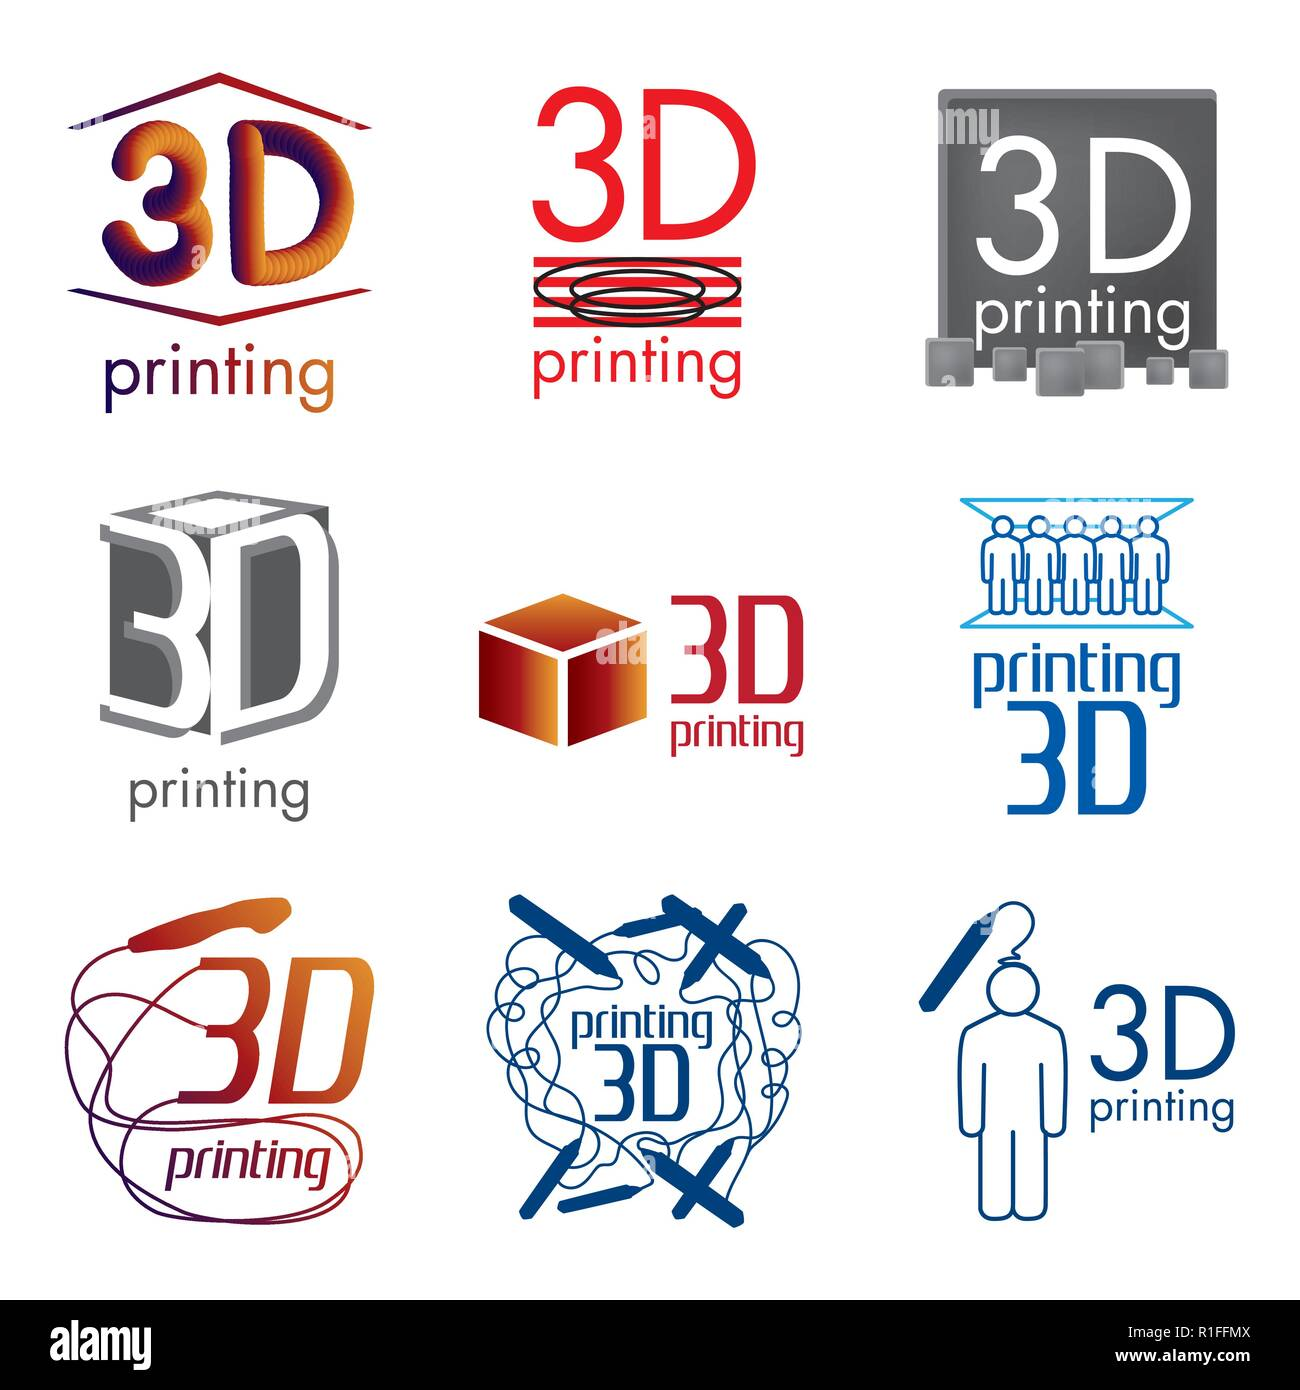 Vector Set Logos 3d Printing And 3d Pens Stock Vector Image Art Alamy